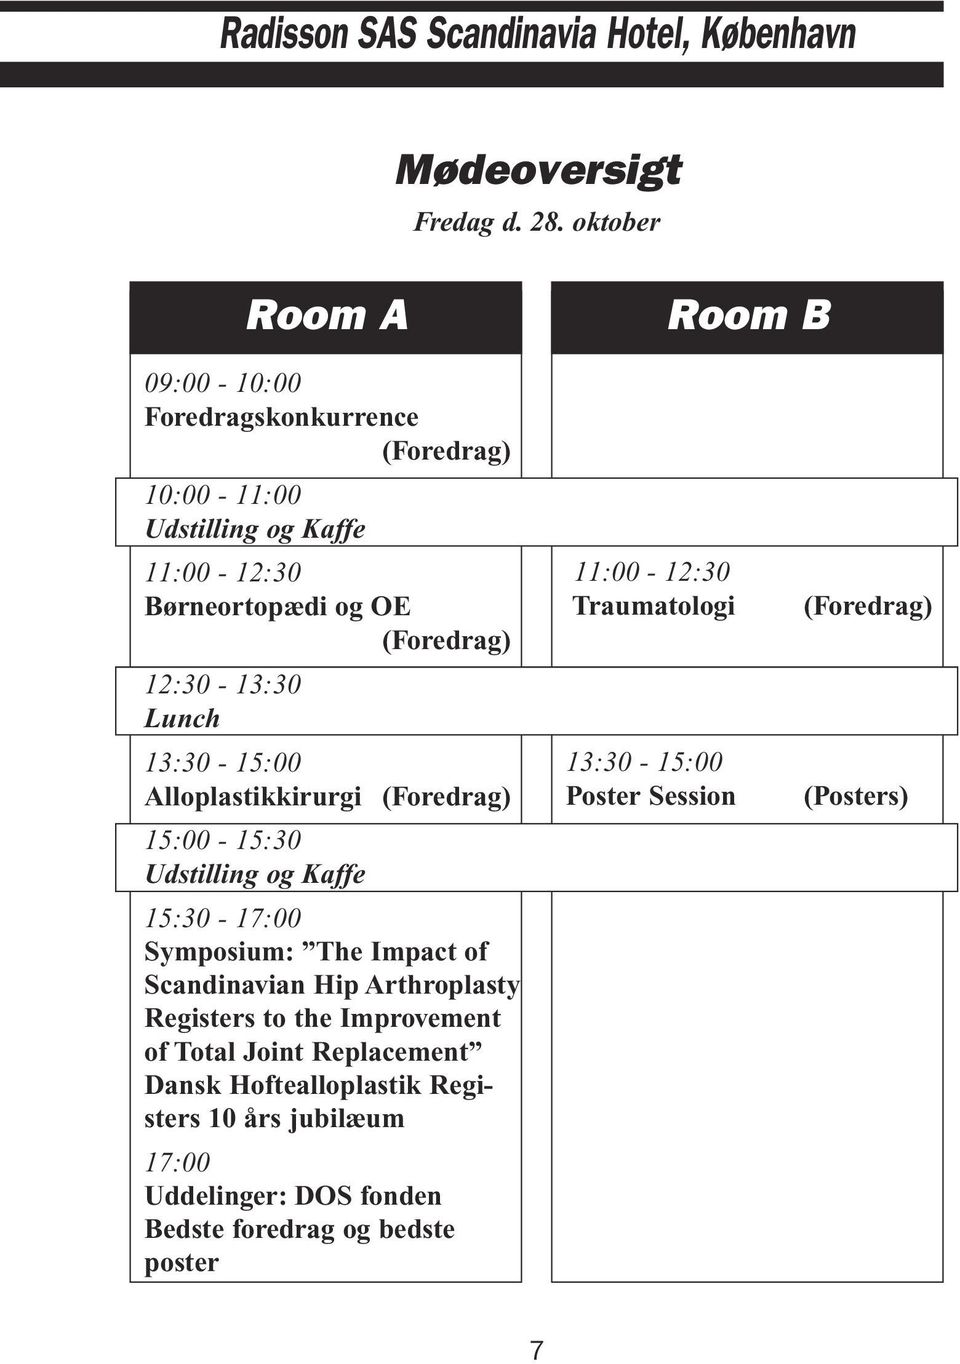 Lunch 13:30-15:00 Alloplastikkirurgi (Foredrag) 15:00-15:30 Udstilling og Kaffe 15:30-17:00 Symposium: The Impact of Scandinavian Hip Arthroplasty